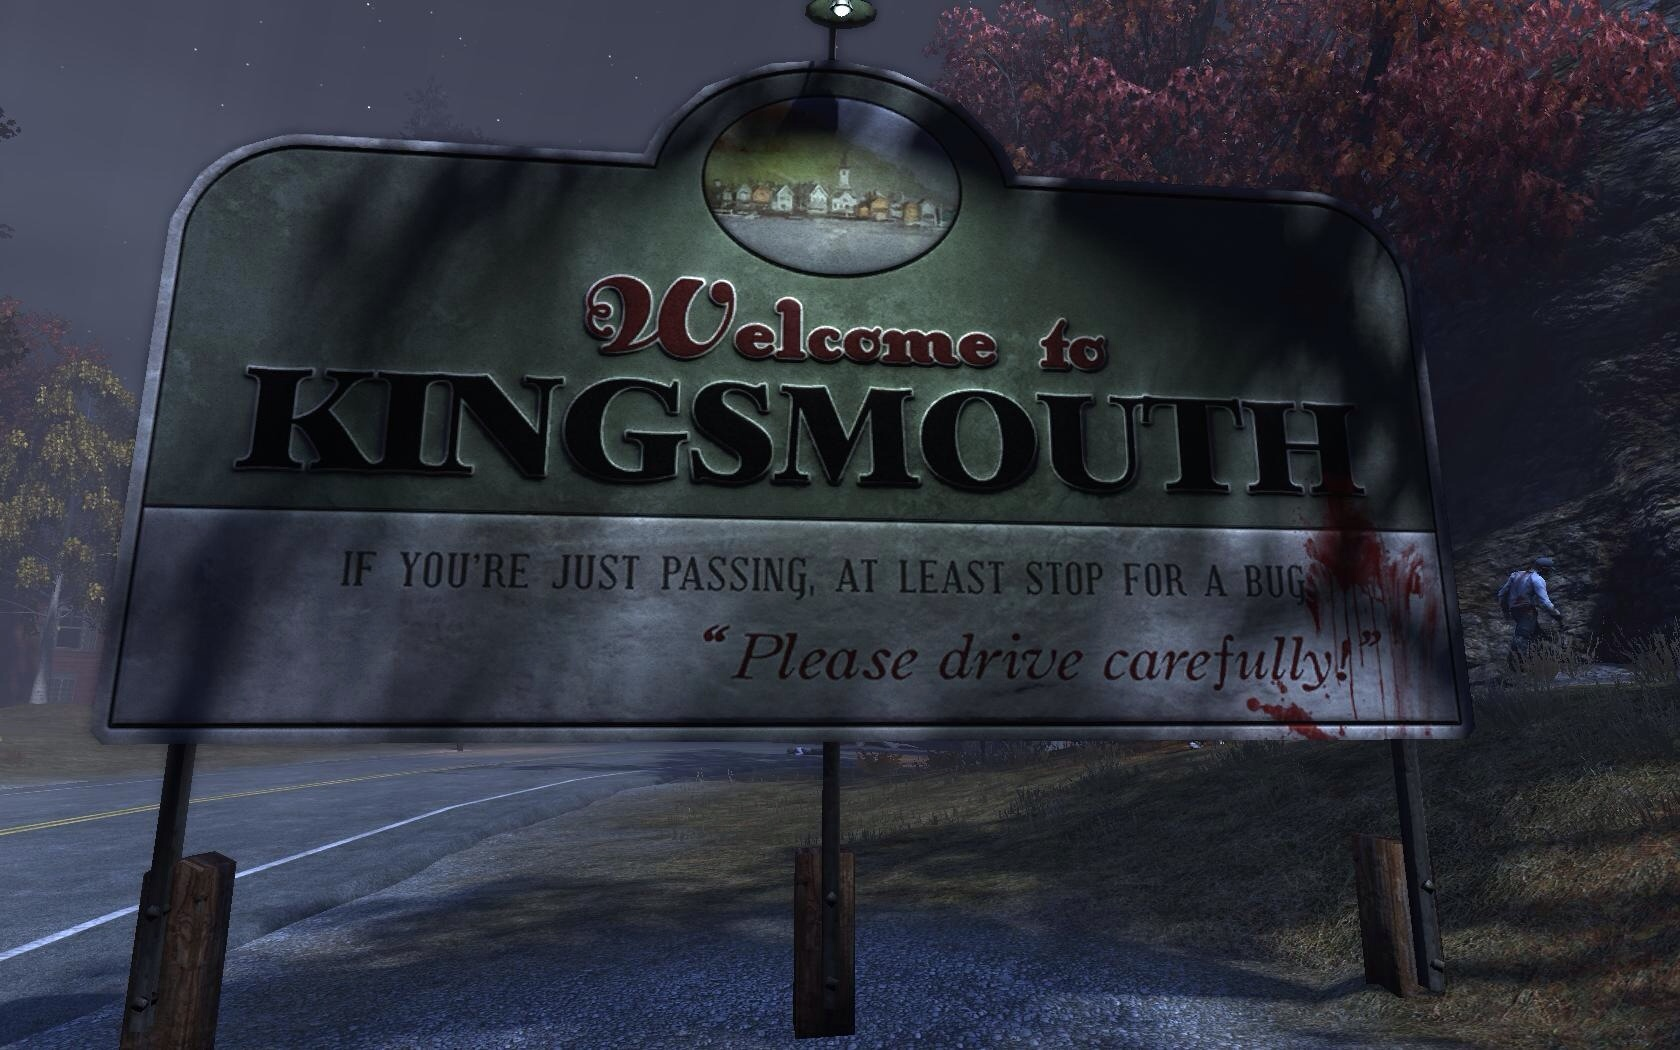 Kingsmouth sign